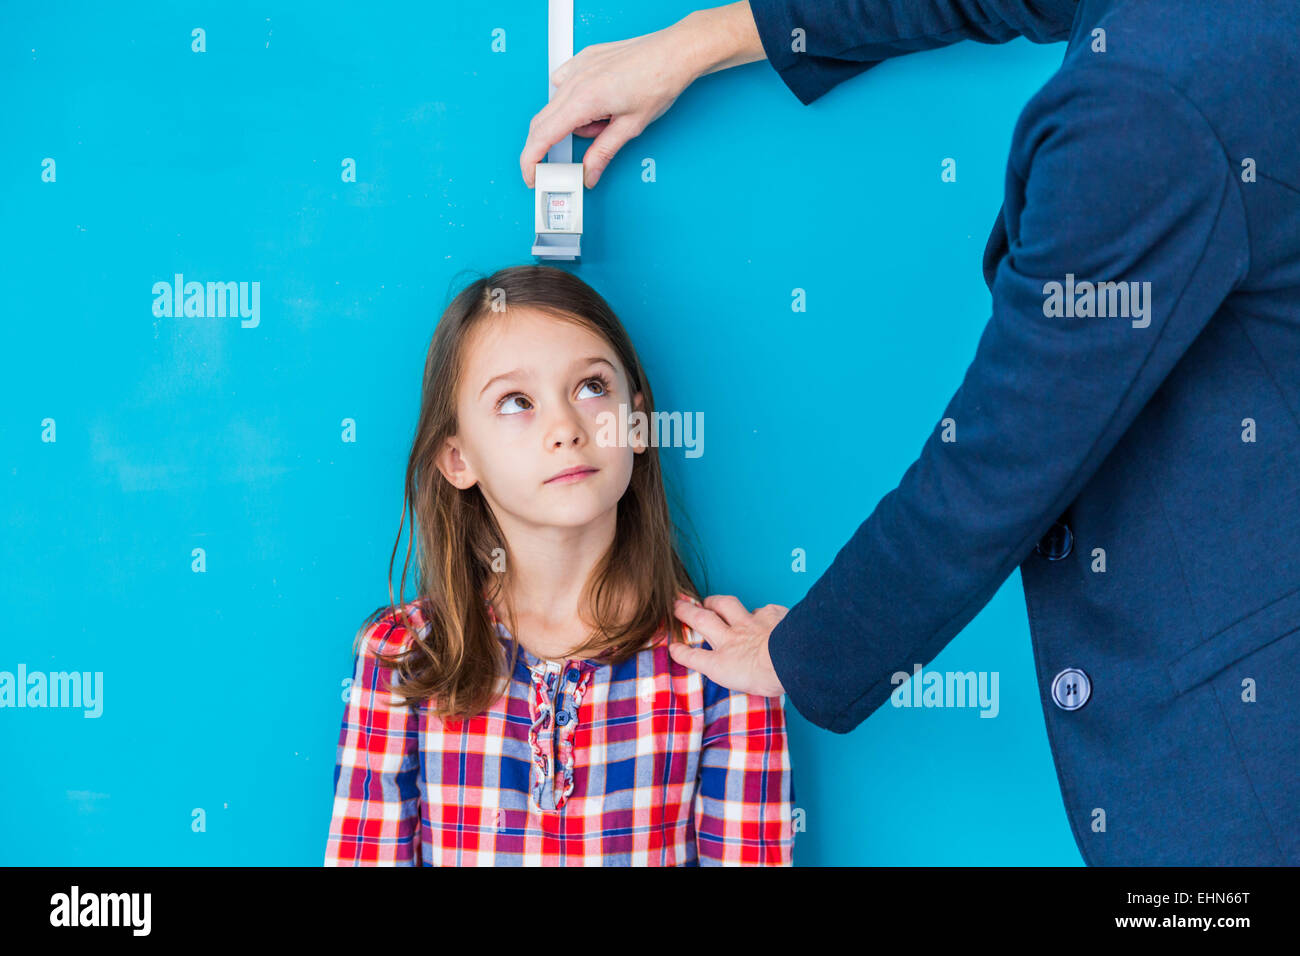 Doctor measuring the height of a young girl during a check-up. - Stock Image